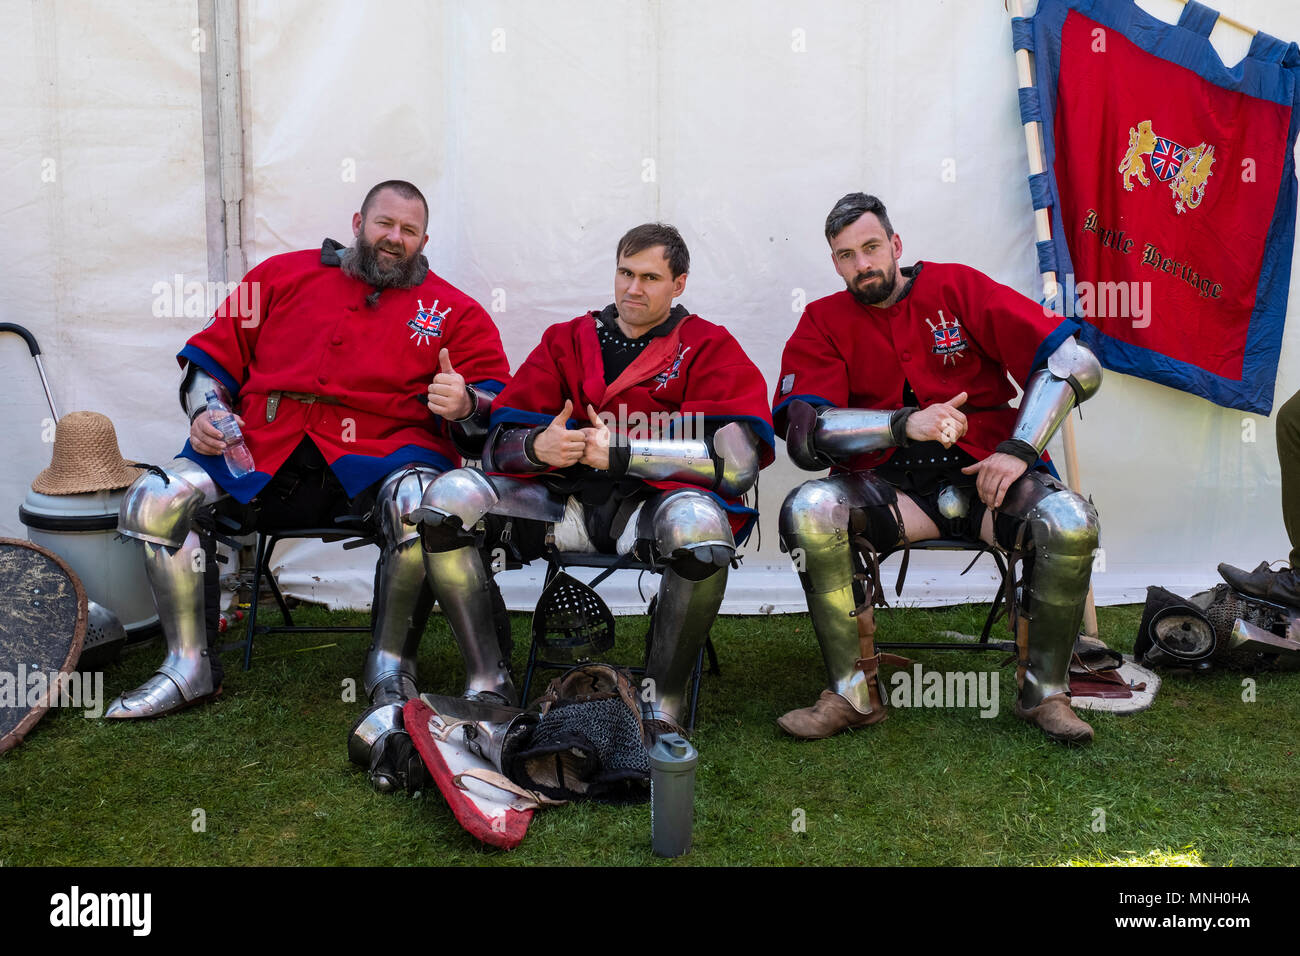 English knights rest during the  International Medieval Combat Federation (IMCF) World Championships  at Scone Palace on May 12, 2018 at Scone Palace  - Stock Image